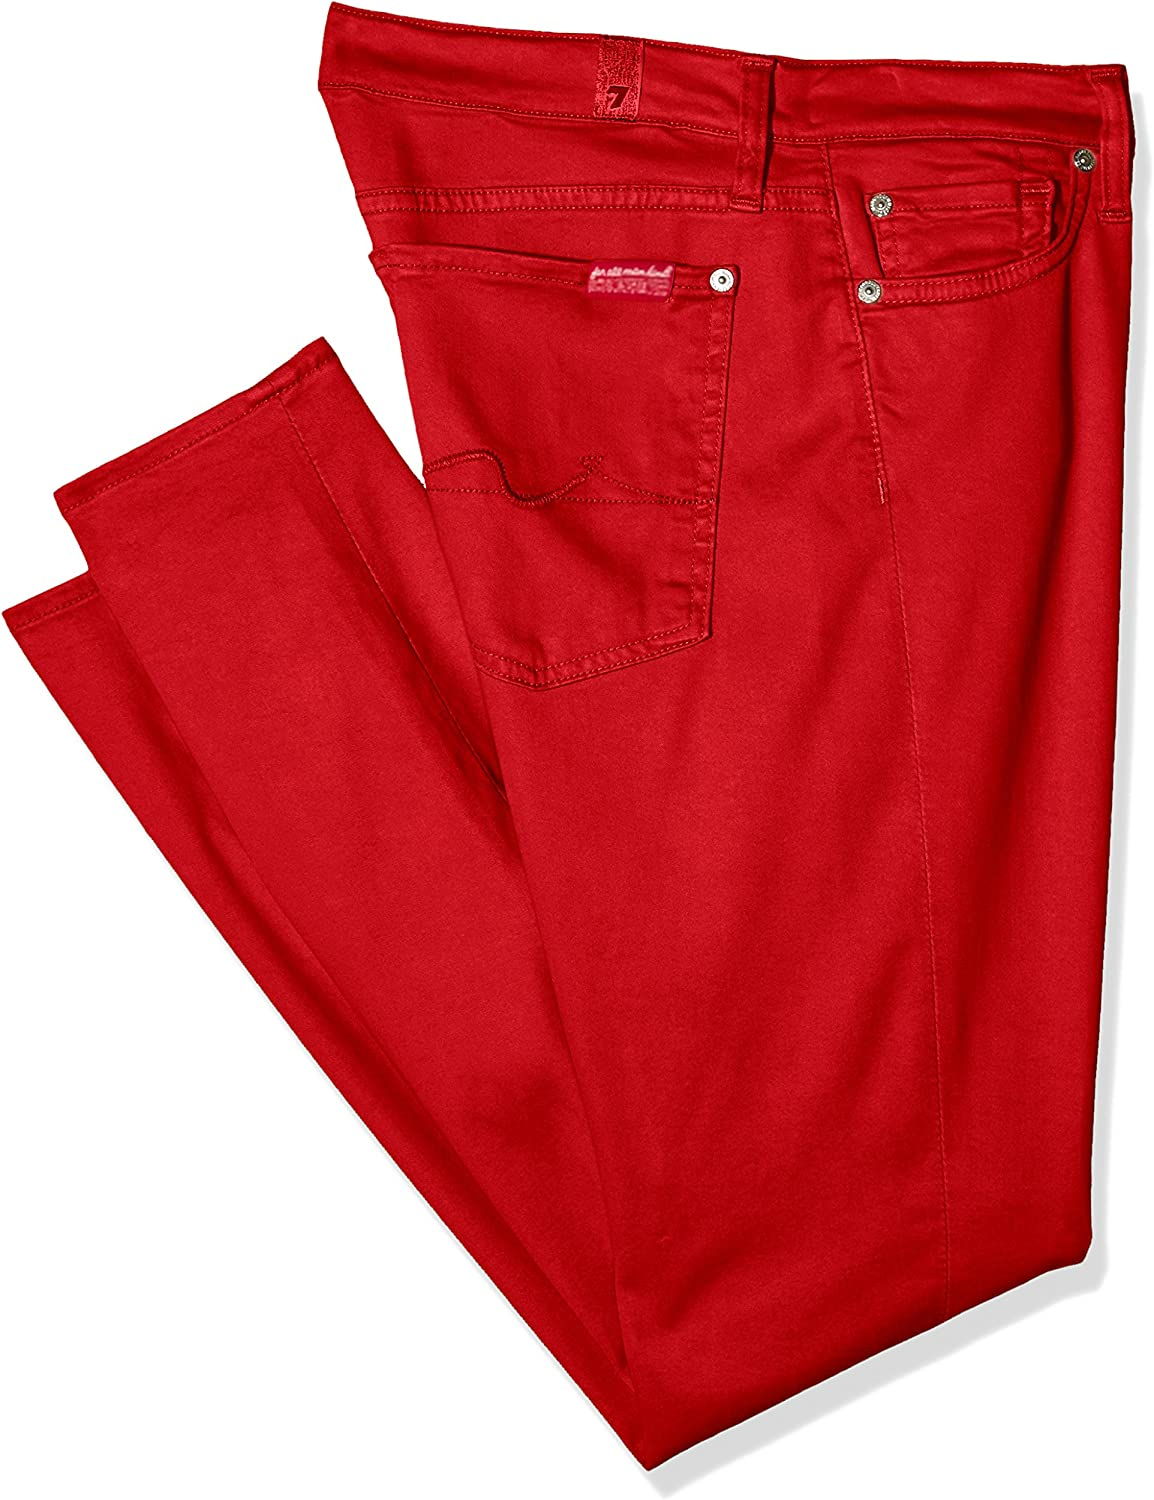 7 For All Mankind Damen The Skinny Crop Jeanshose Rot (Red 0re)